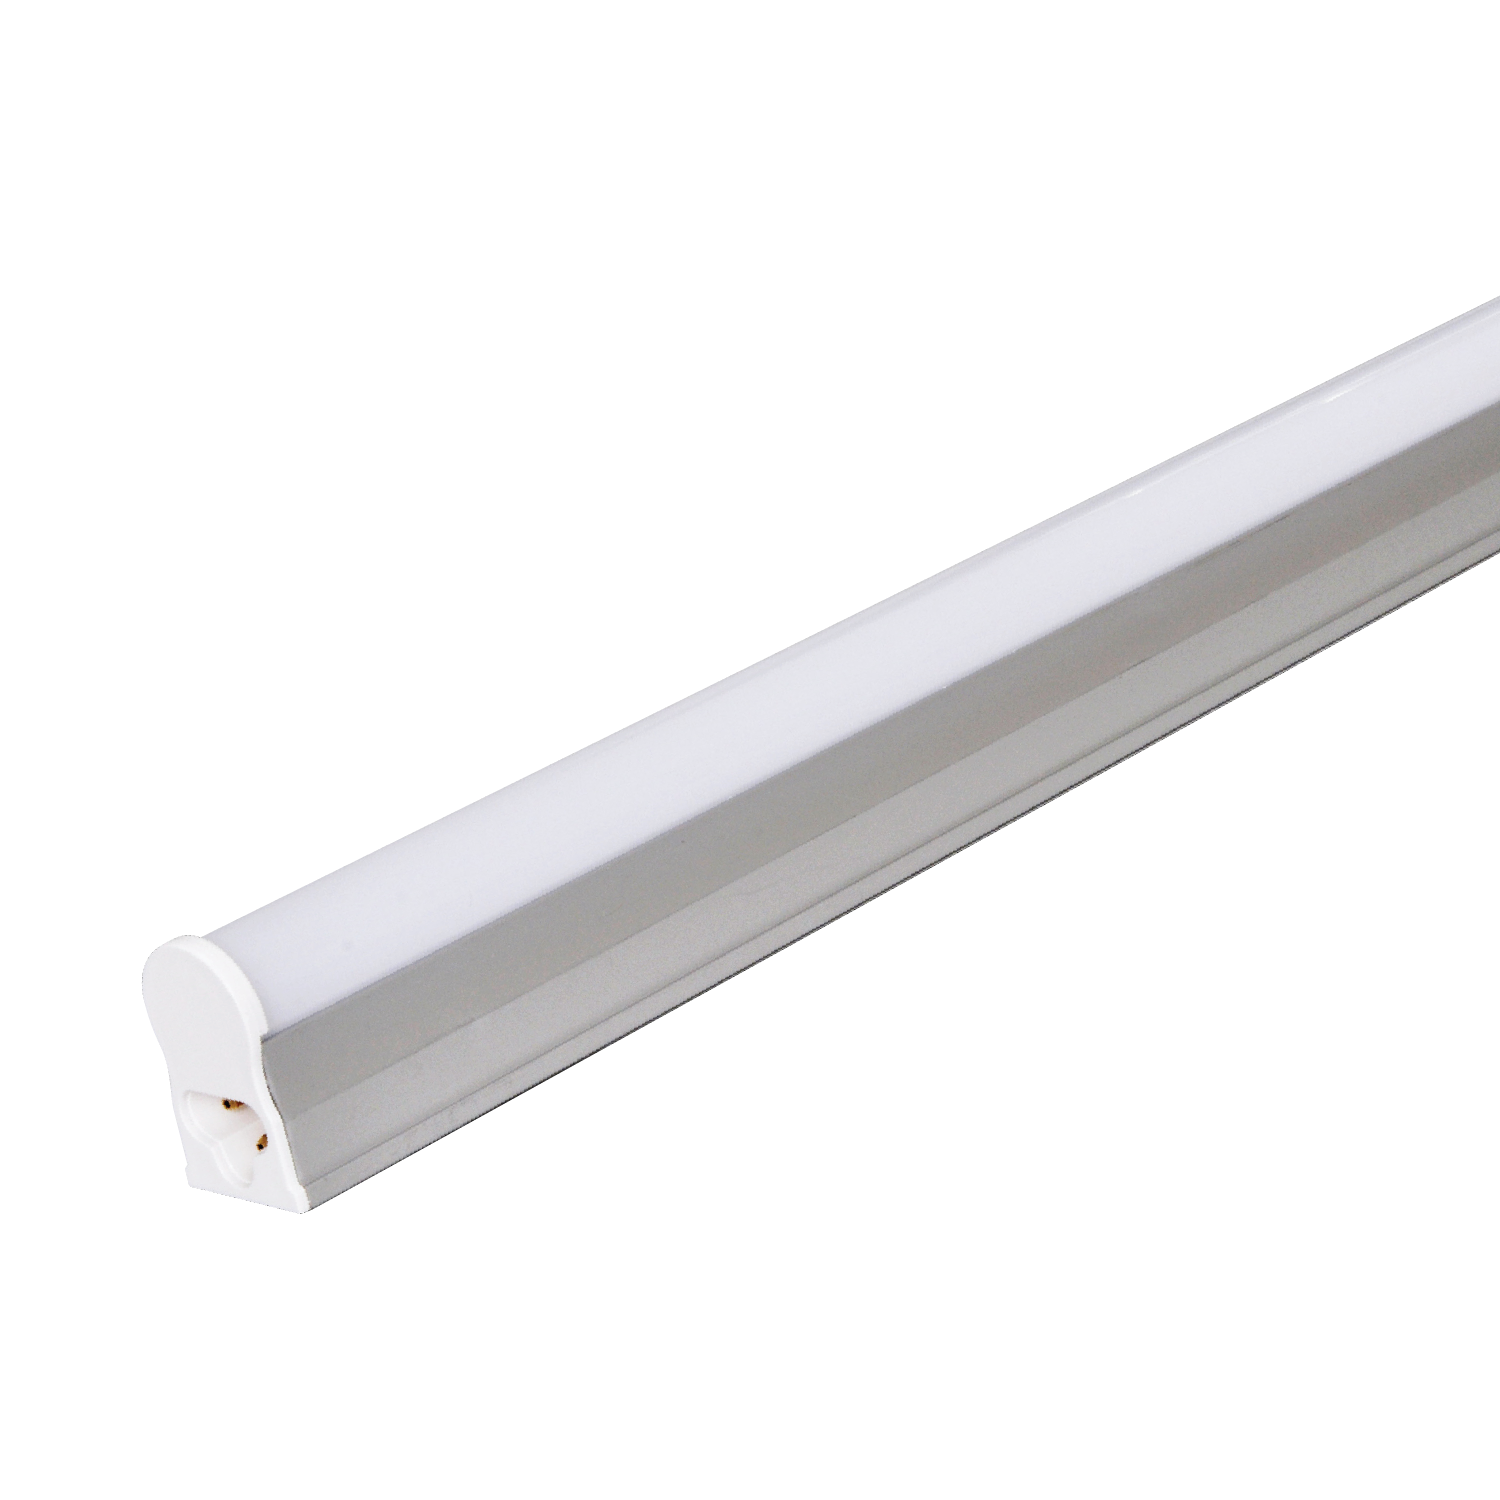 LED Integrated T5 Under Cabinet Light Fixture